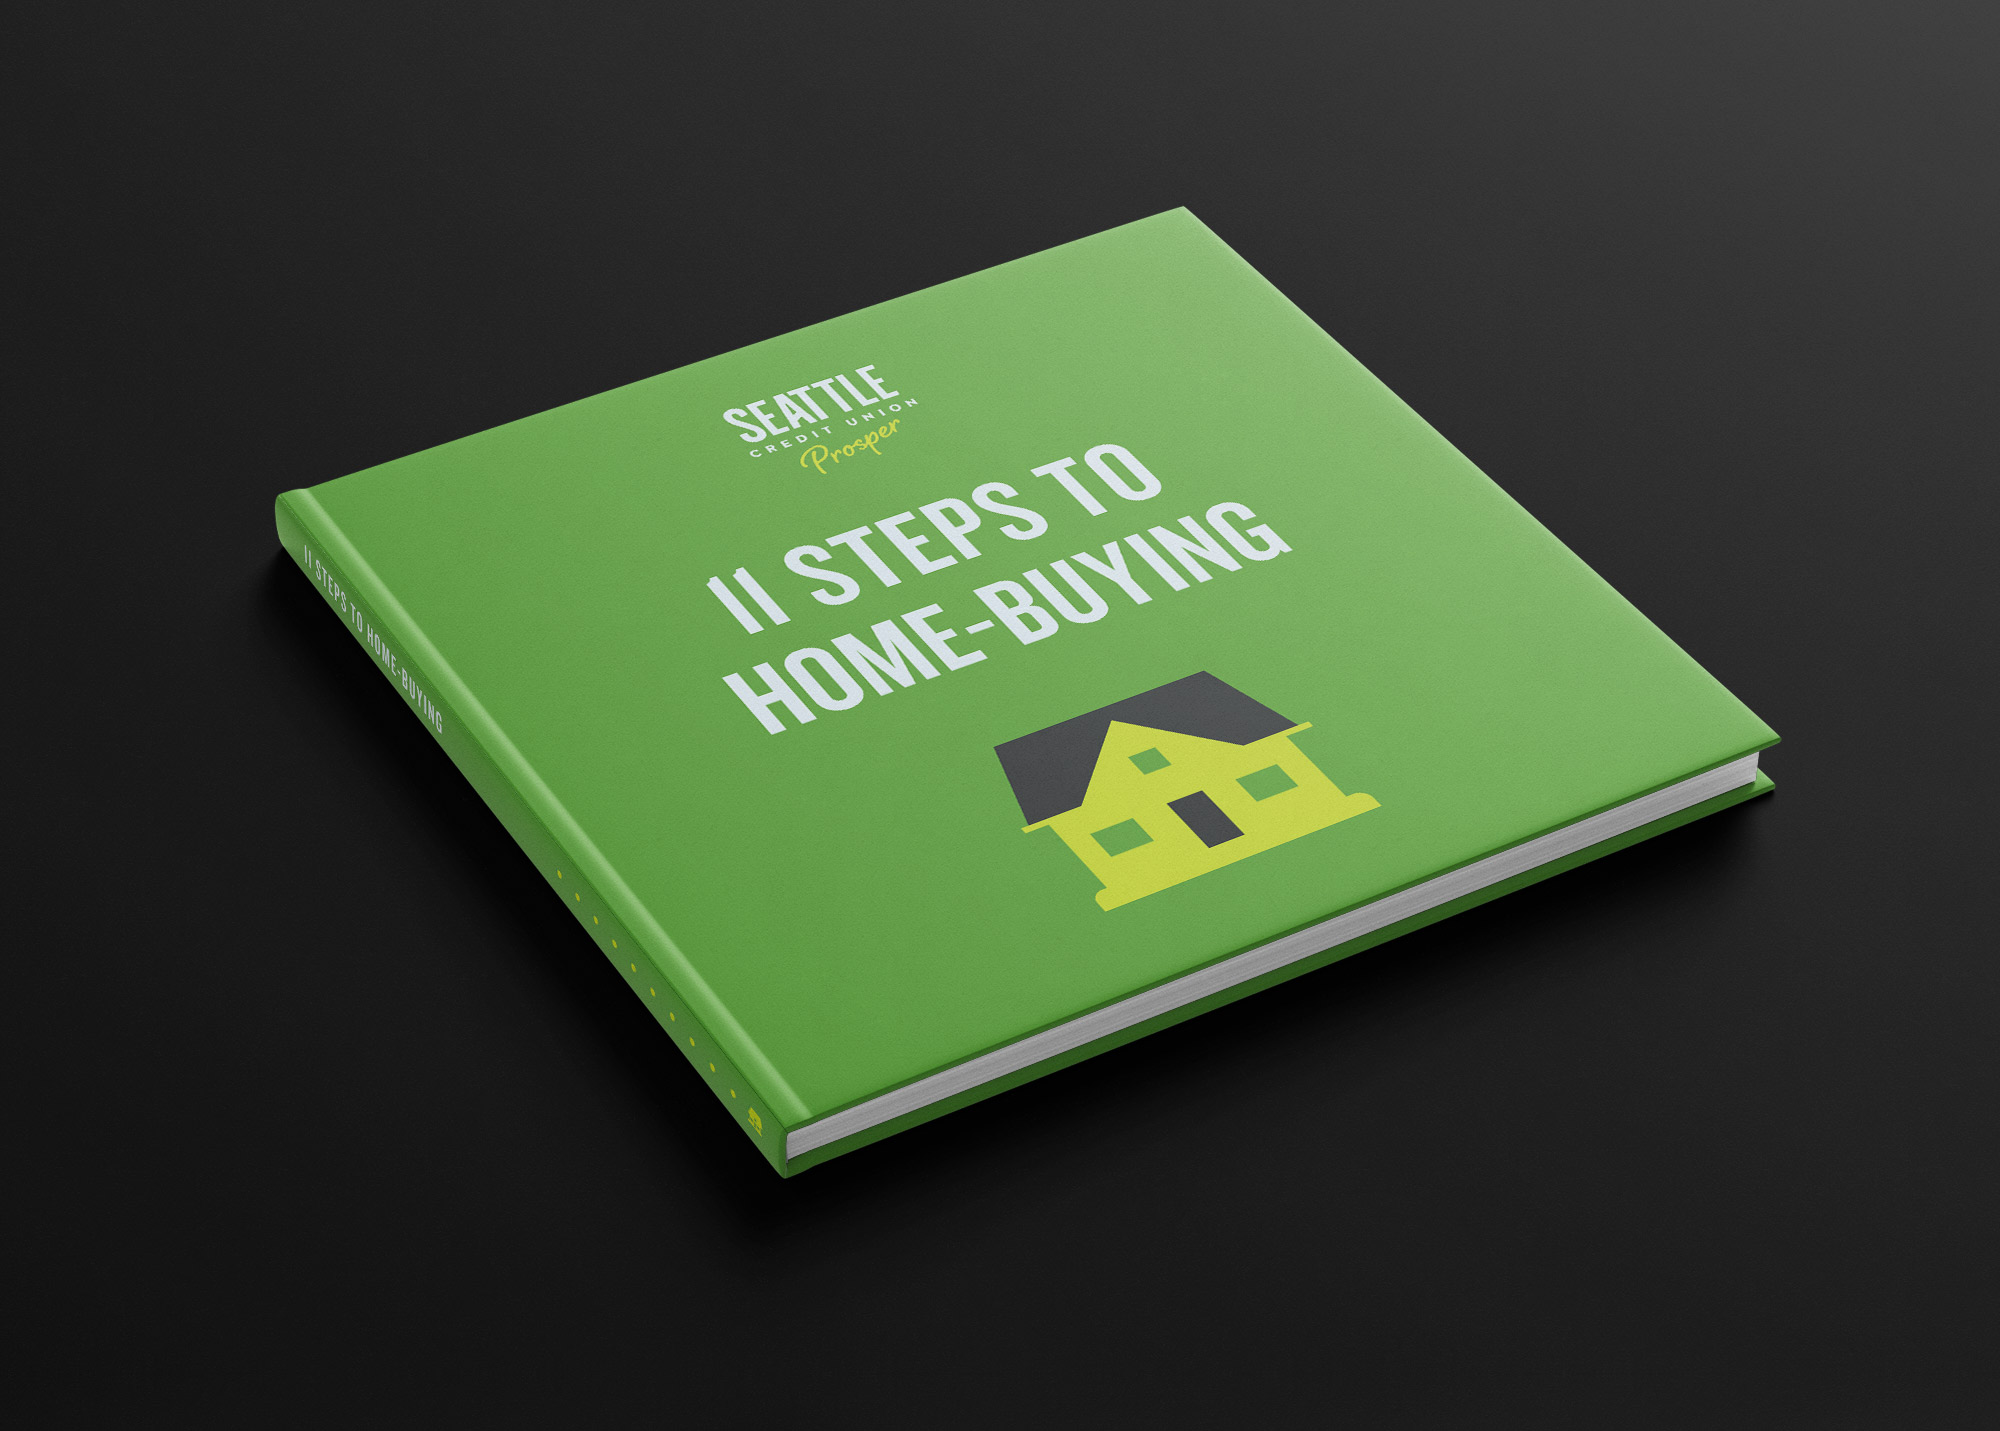 11 Steps to home-buying